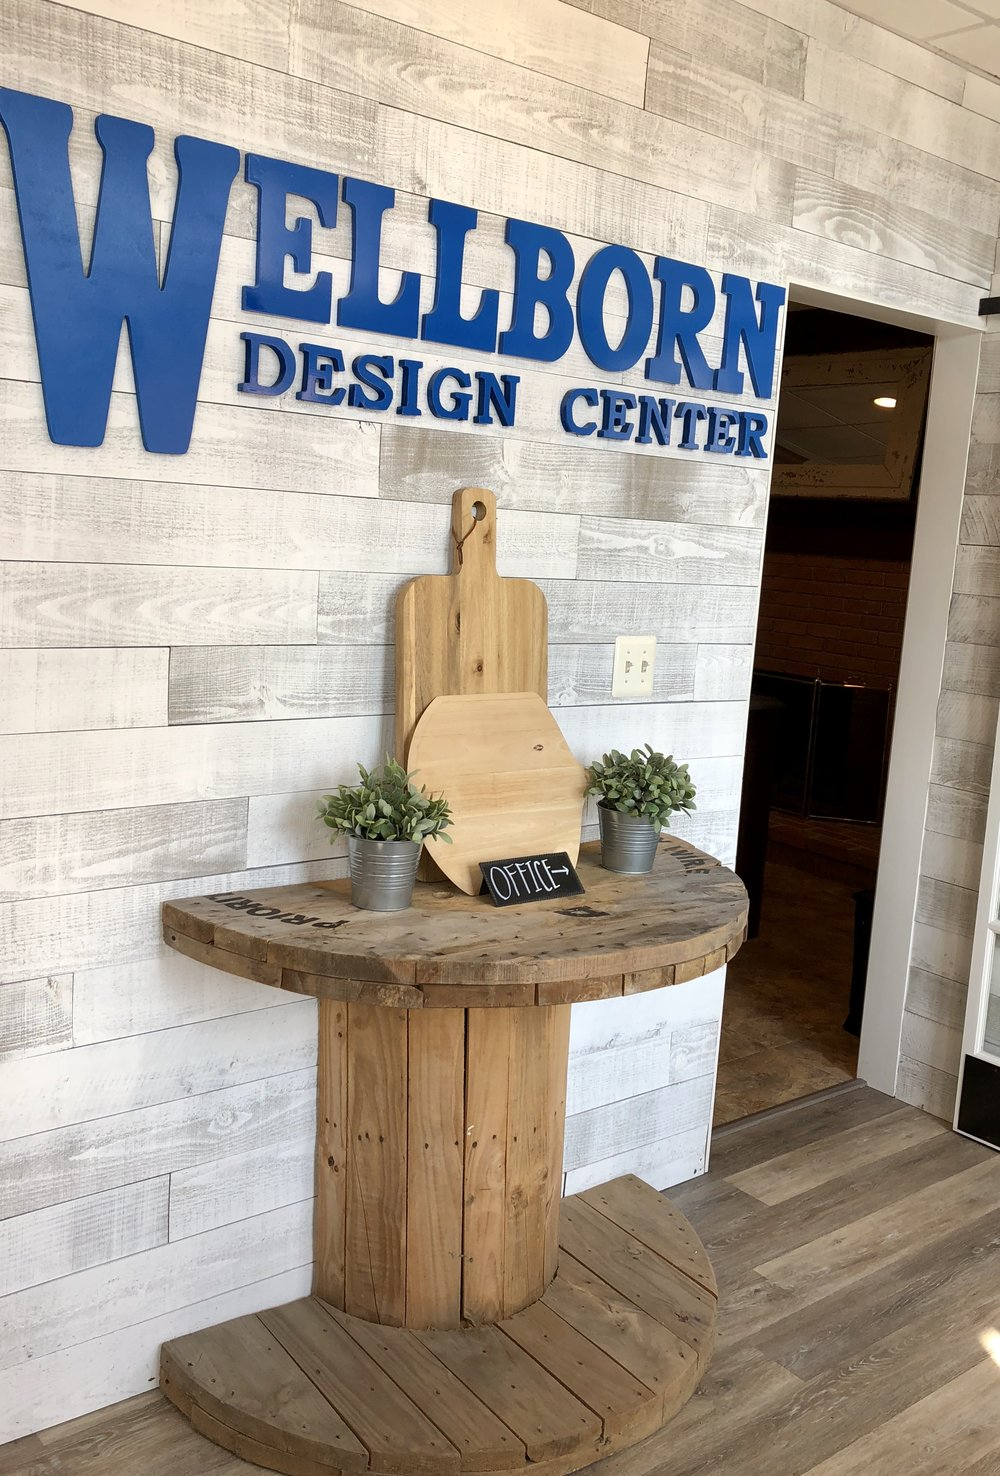 Wellborn Design Center - Come see us:by Appointment Only:14307 Jarrettsville PikePhoenix, MD 21131